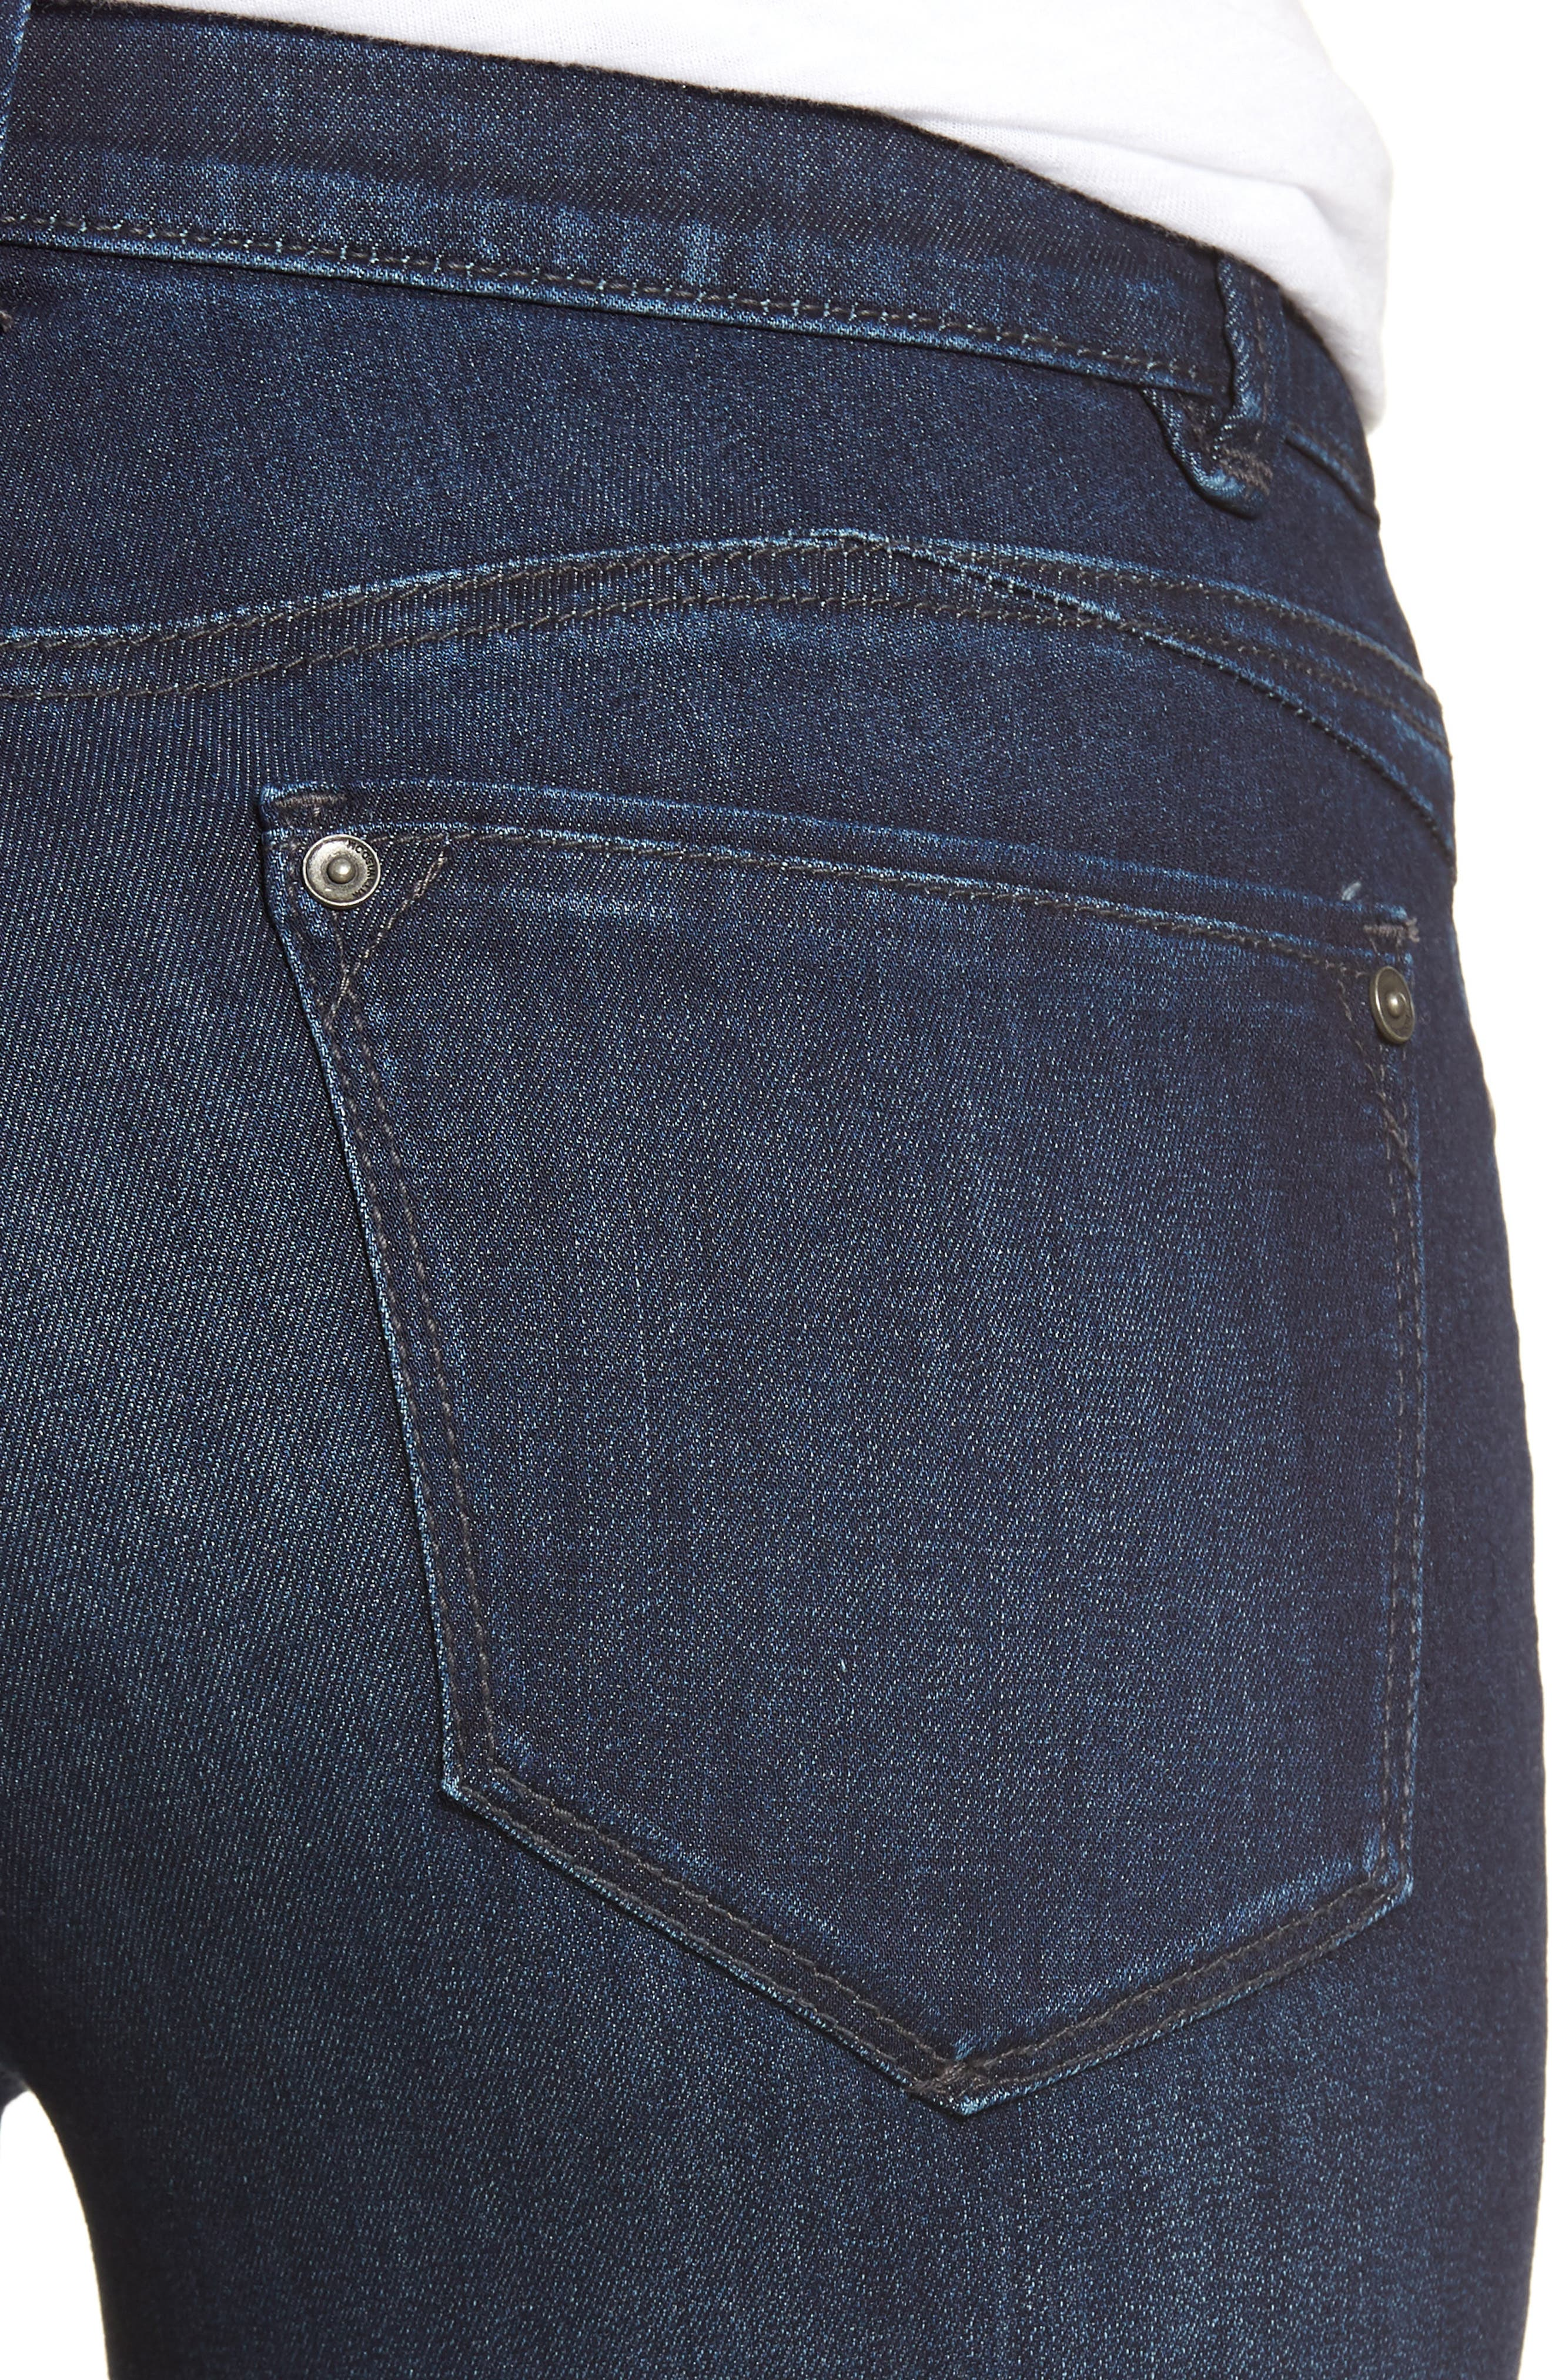 Ab-solution Skinny Jeans,                             Alternate thumbnail 4, color,                             In- Indigo